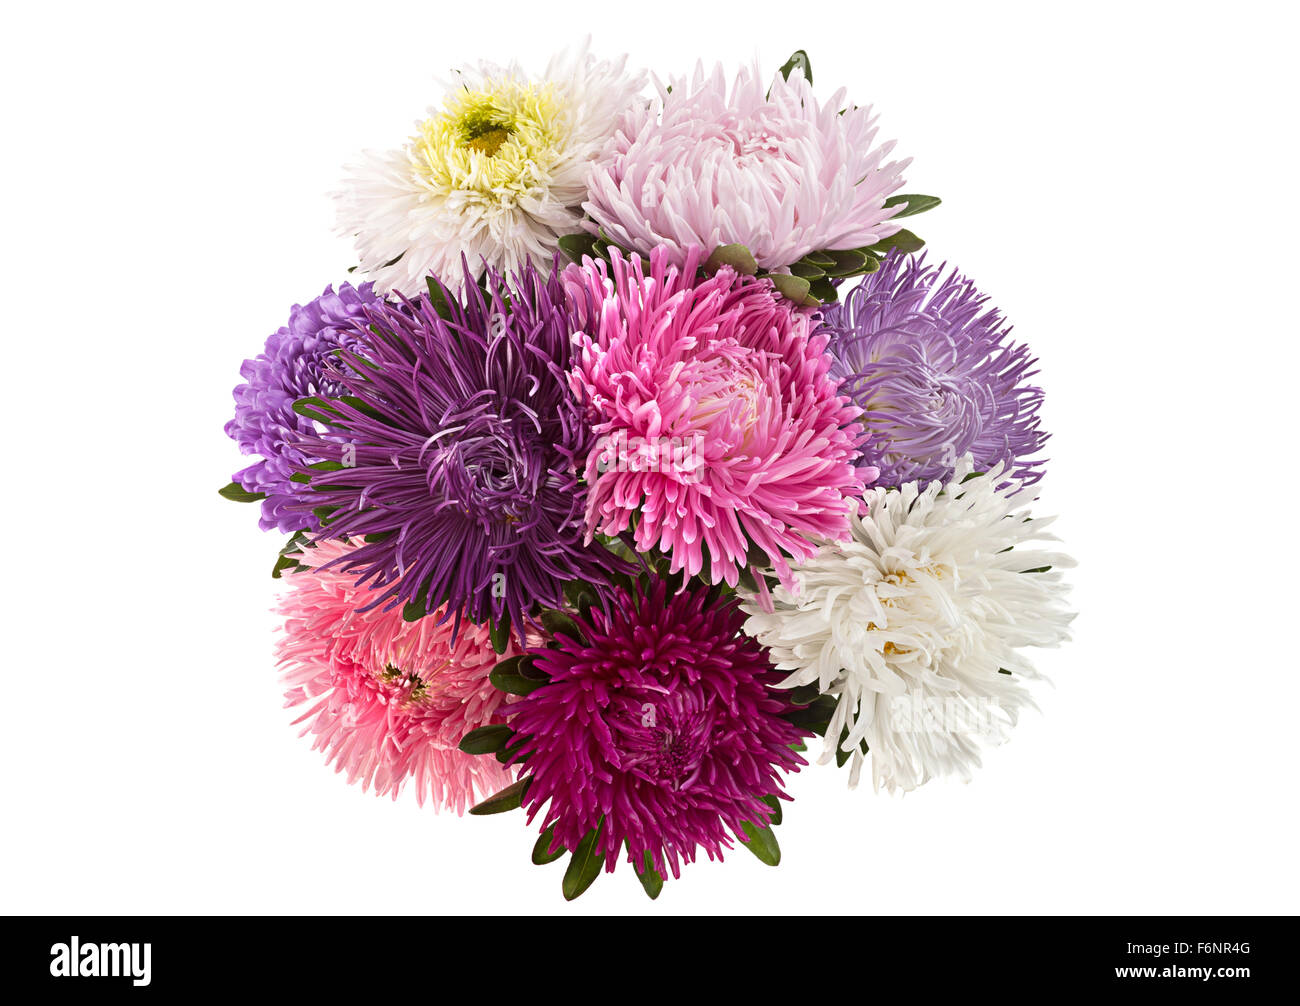 Aster flower bouquet closeup isolated on white background stock aster flower bouquet closeup isolated on white background izmirmasajfo